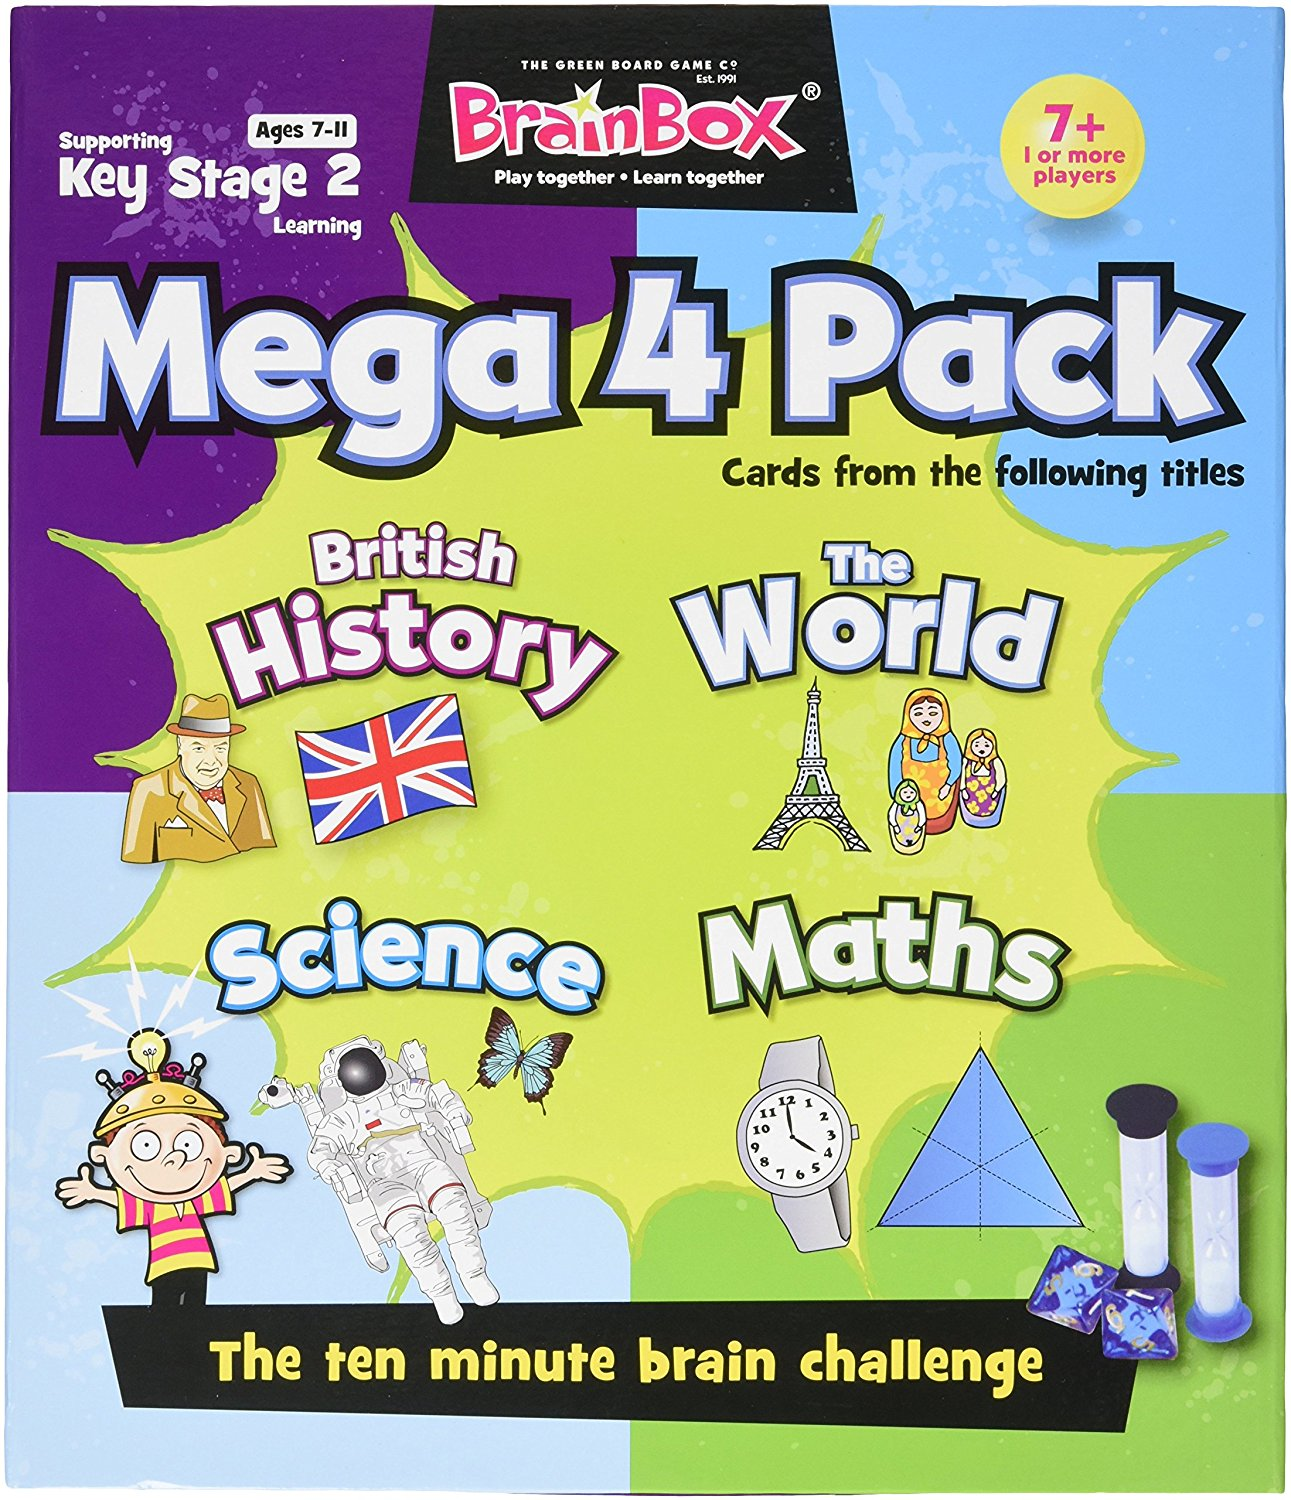 BrainBox Mega 4 Pack